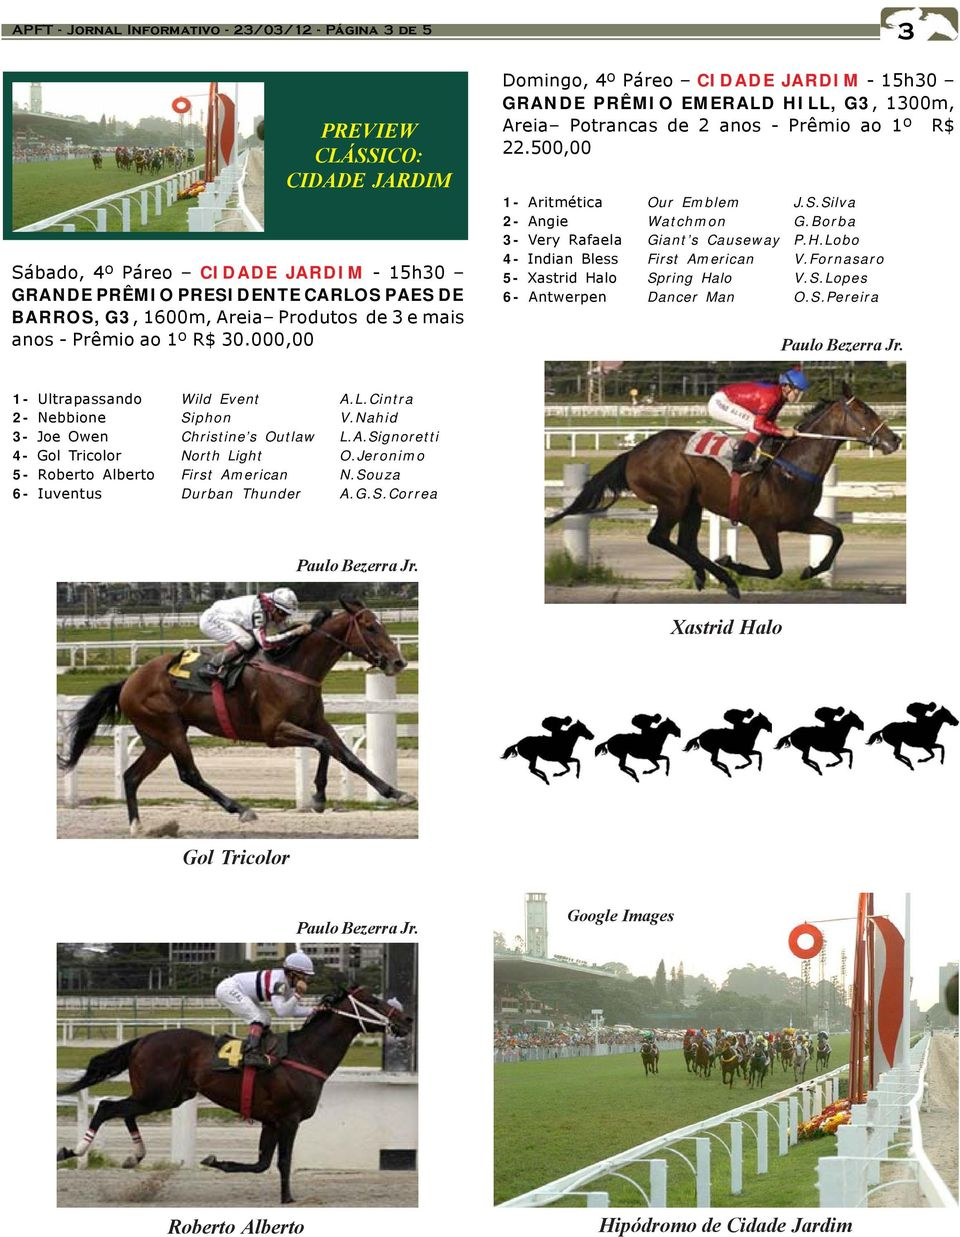 500,00 1- Aritmética Our Emblem J.S.Silva 2- Angie Watchmon G.Borba 3- Very Rafaela Giant s Causeway P.H.Lobo 4- Indian Bless First American V.Fornasaro 5- Xastrid Halo Spring Halo V.S.Lopes 6- Antwerpen Dancer Man O.